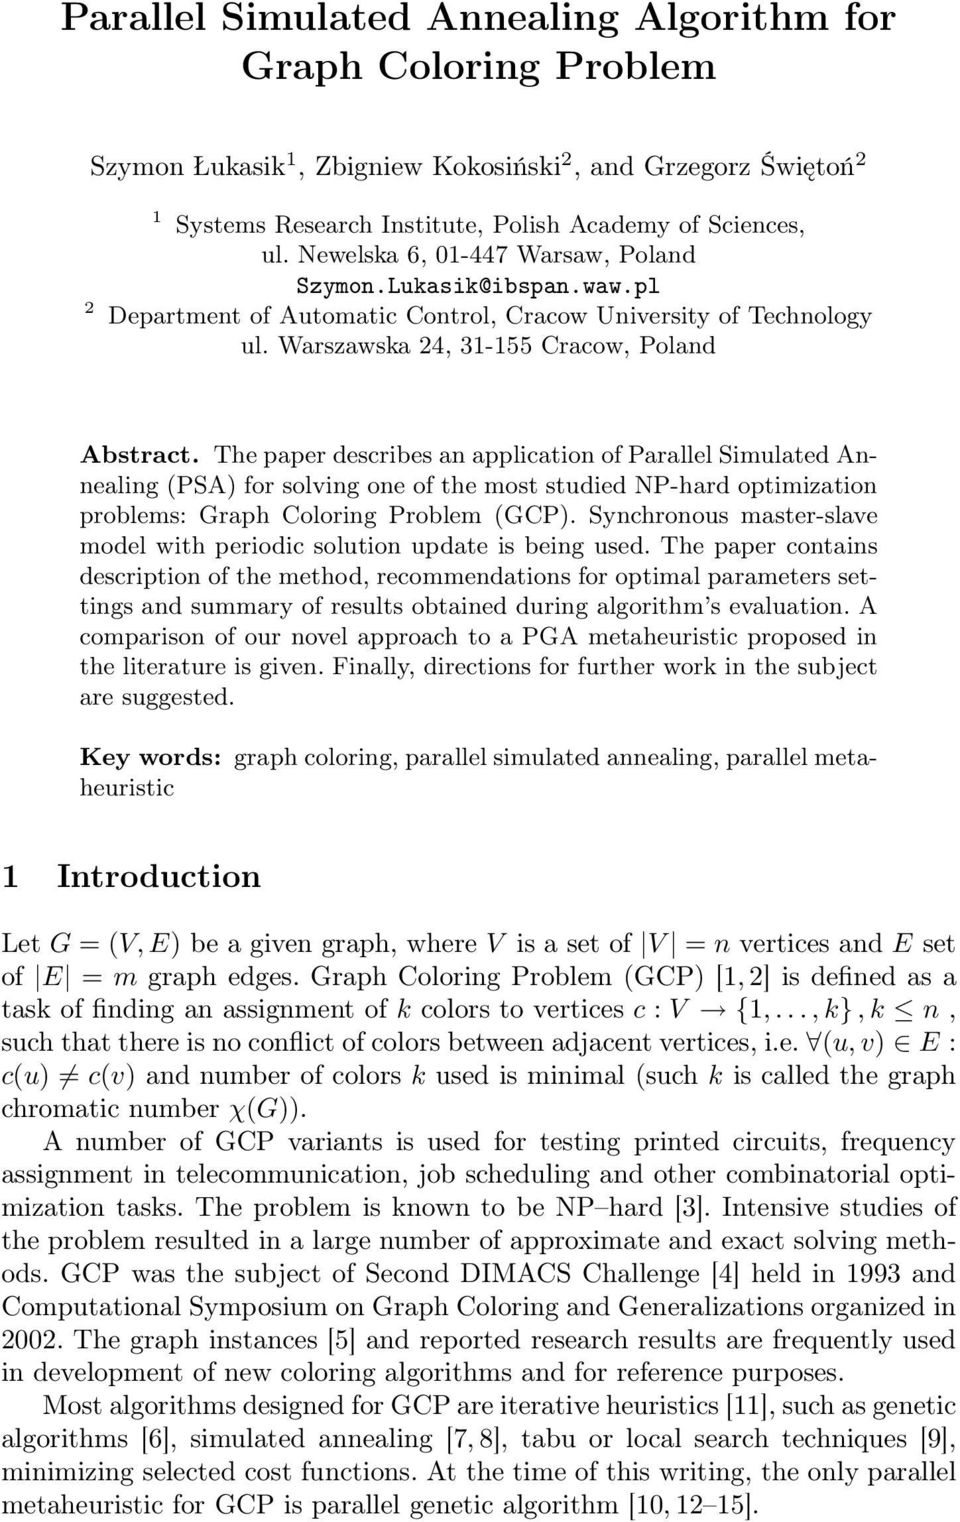 The paper describes an application of Parallel Simulated Annealing (PSA) for solving one of the most studied NP-hard optimization problems: Graph Coloring Problem (GCP).